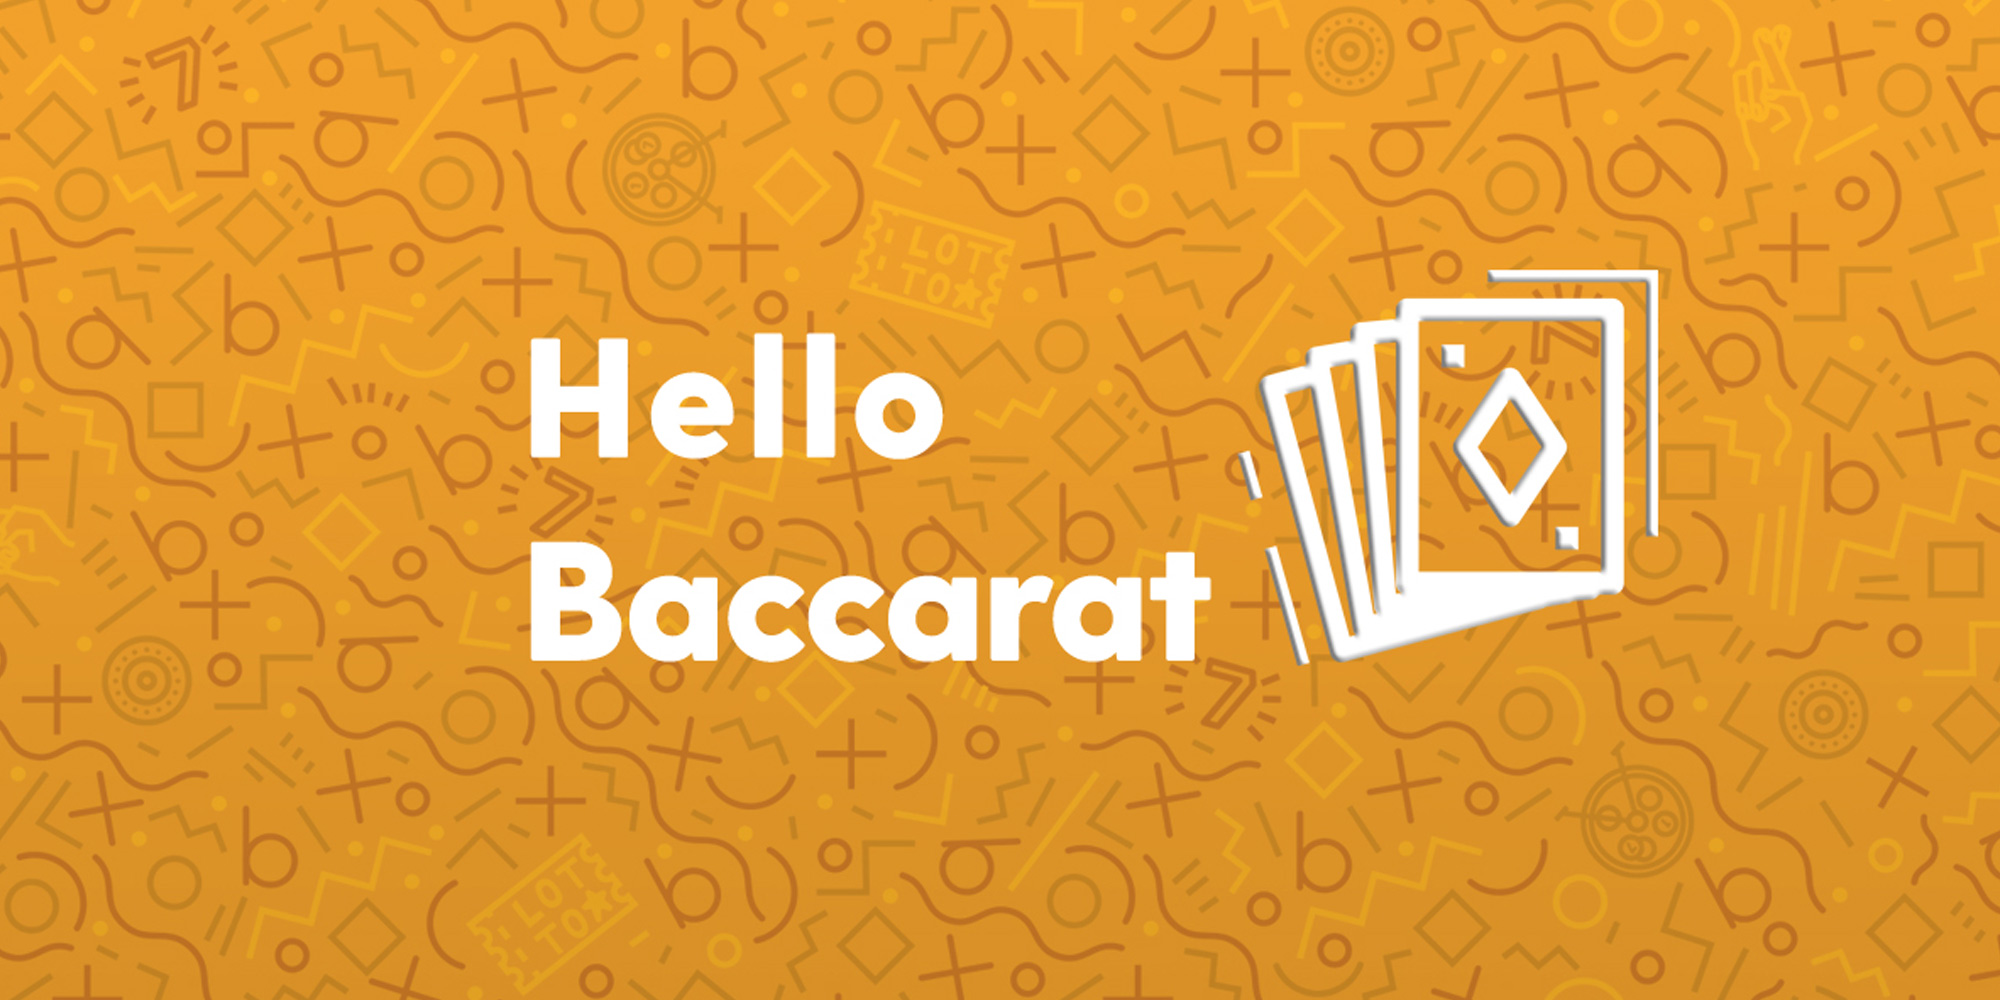 Baccarat: How to play